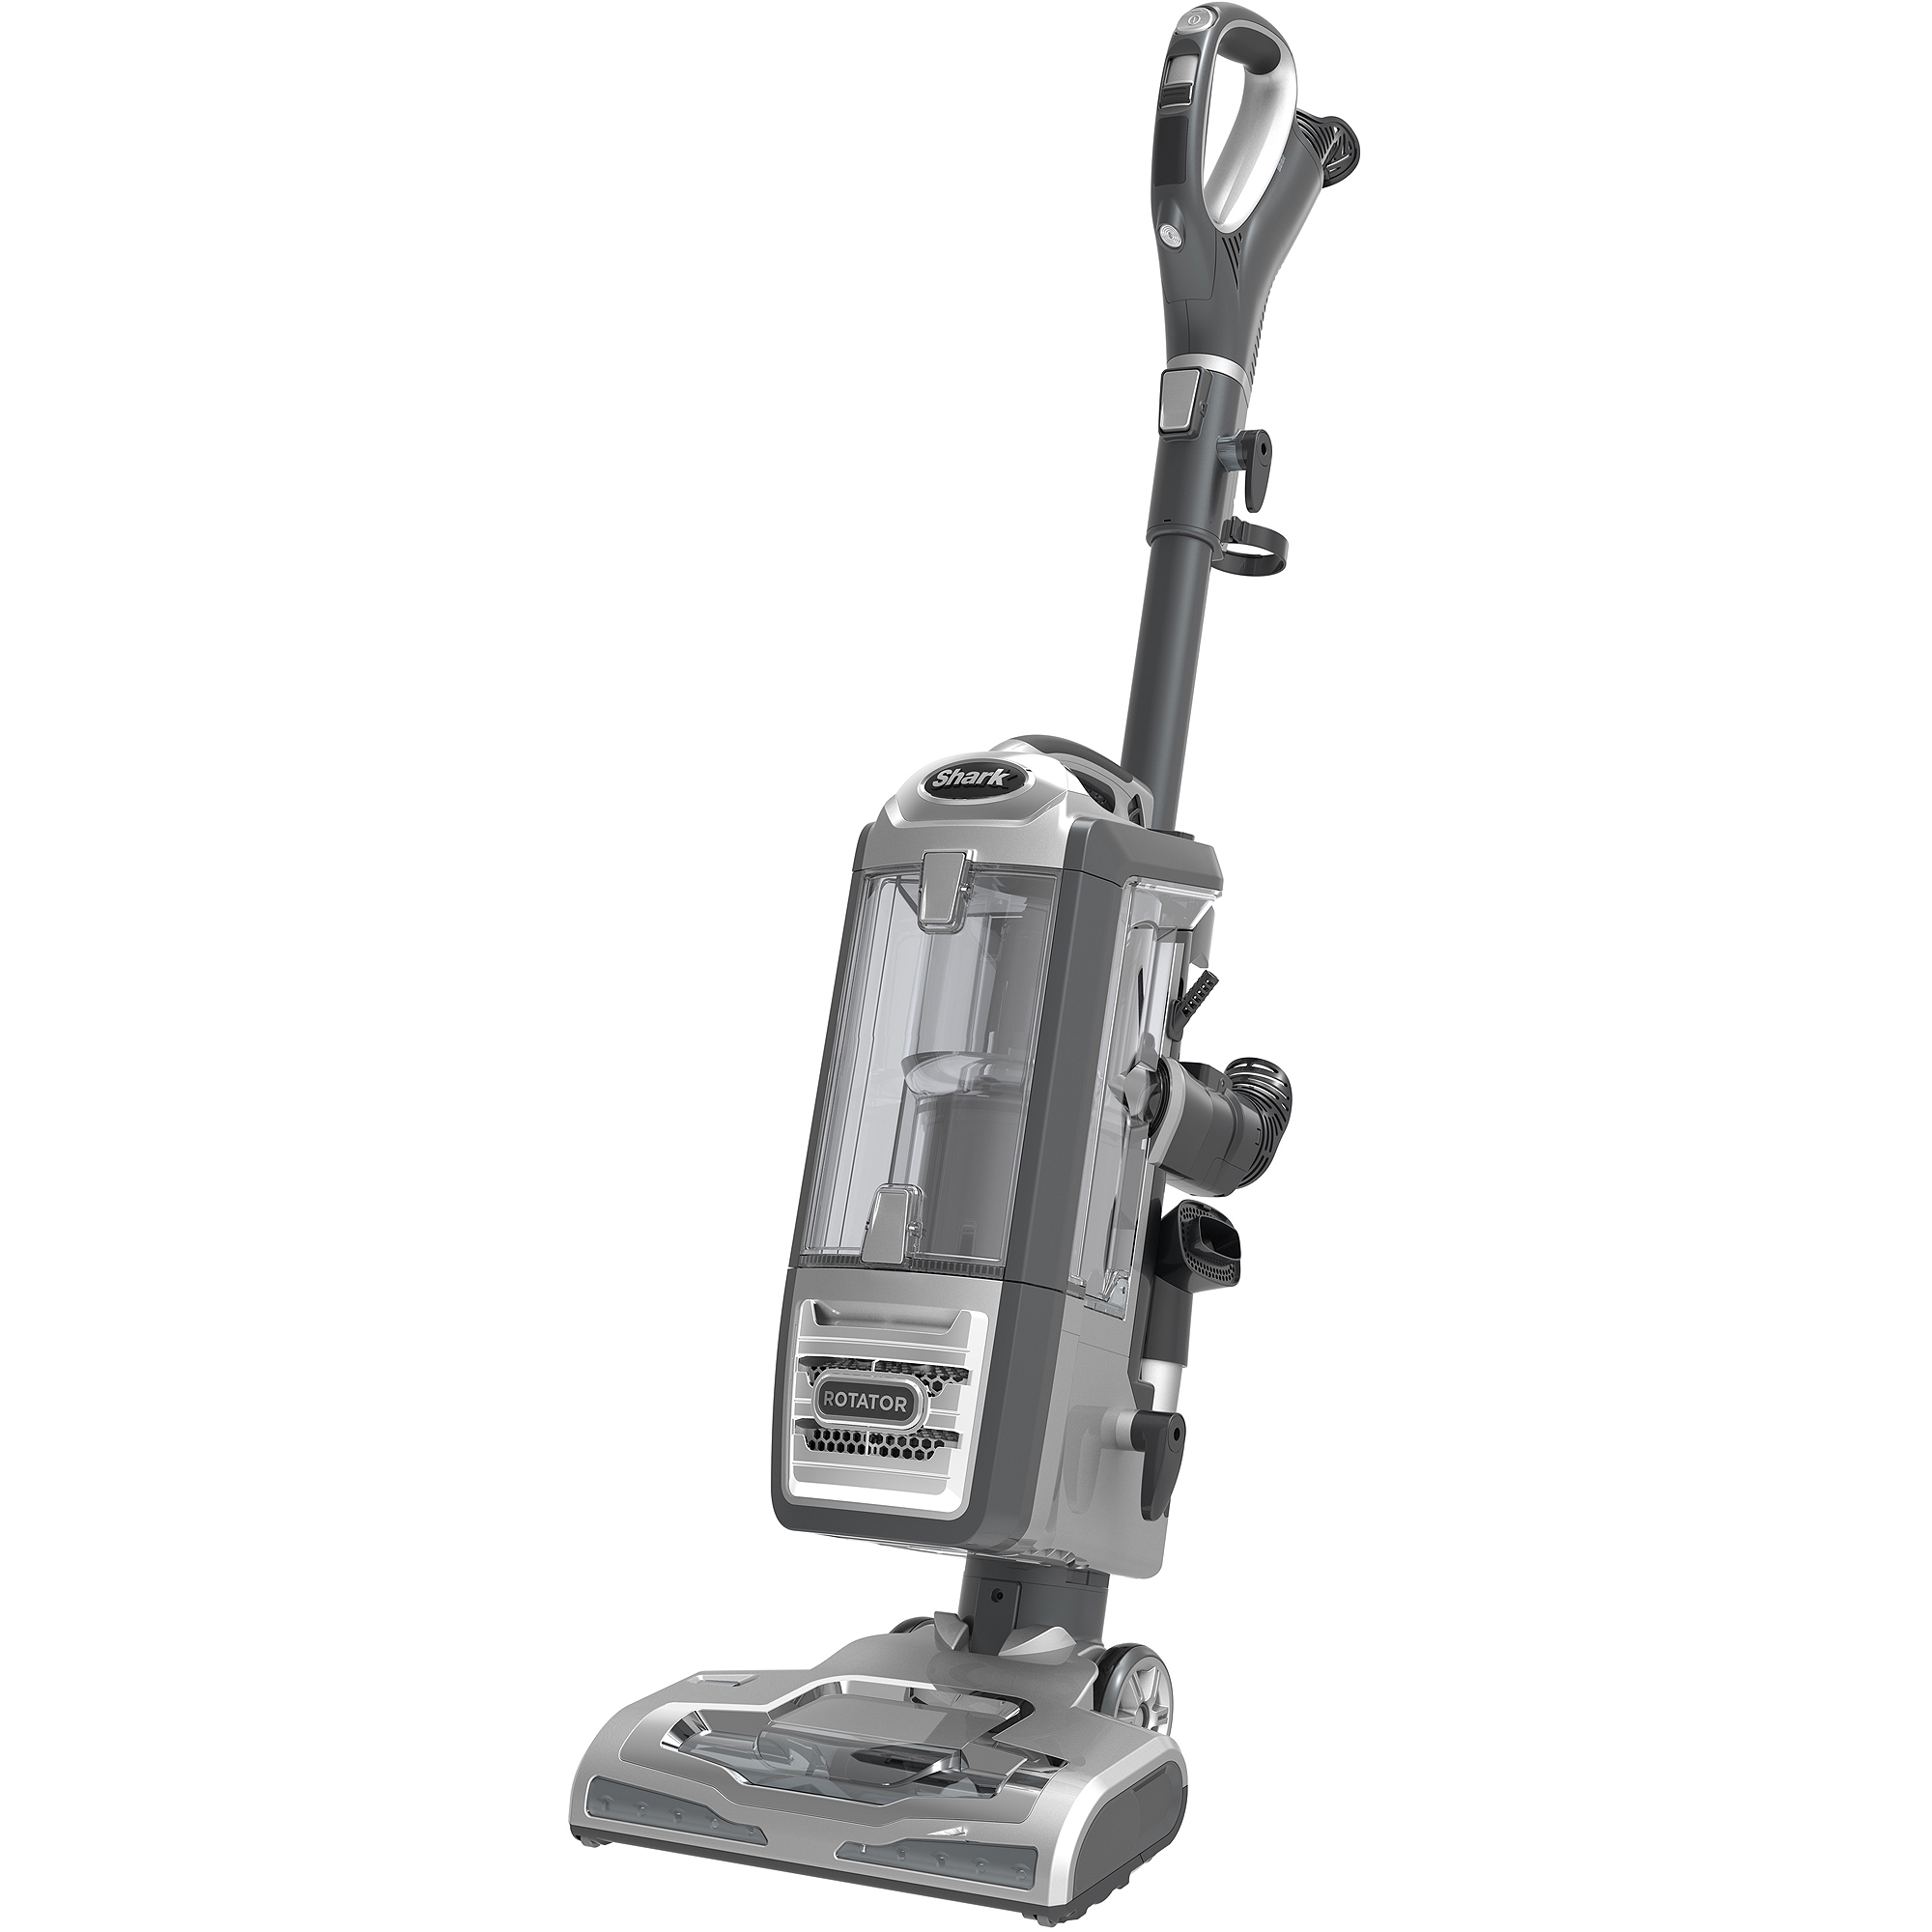 Best Shark Vacuum Cleaners Feb 2019 Cleanwellexpert